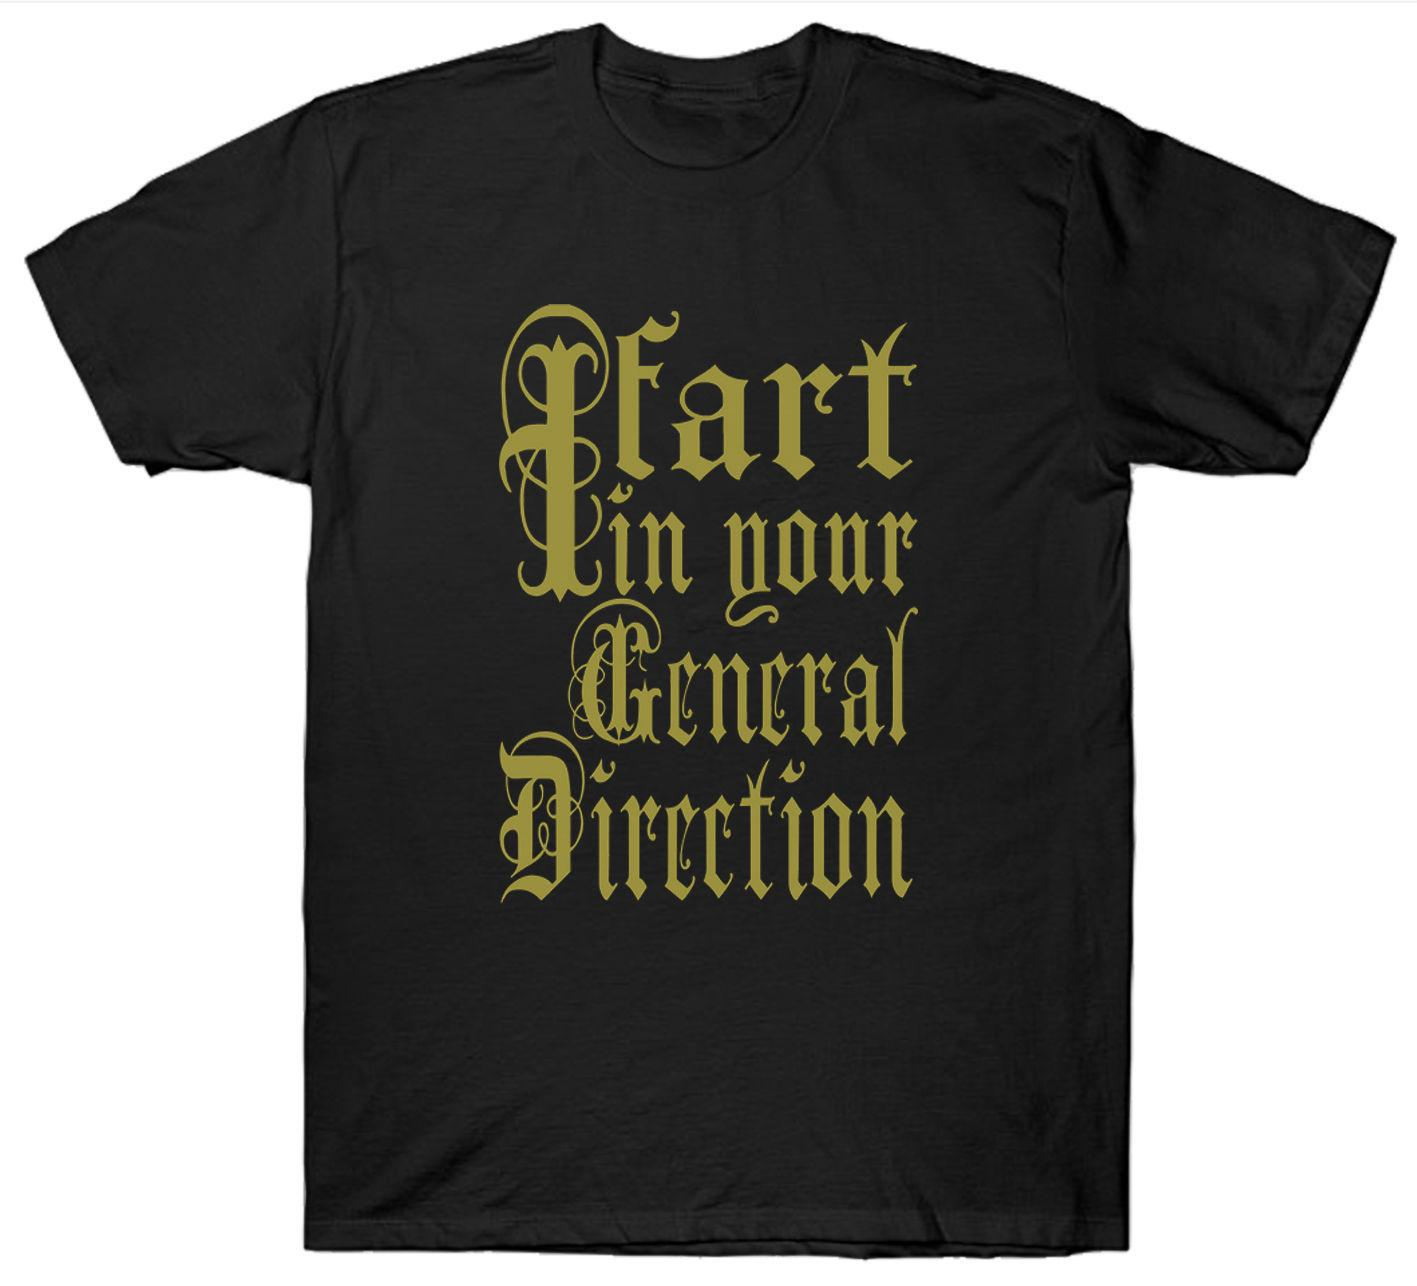 a8205651 MONTY PYTHON T SHIRT I FART IN YOUR GENERAL DIRECTION FUNNY SLOGAN HOLY  GRAIL Offensive Tee Shirts T Shirt A Day From Viptshirt, $11.17| DHgate.Com